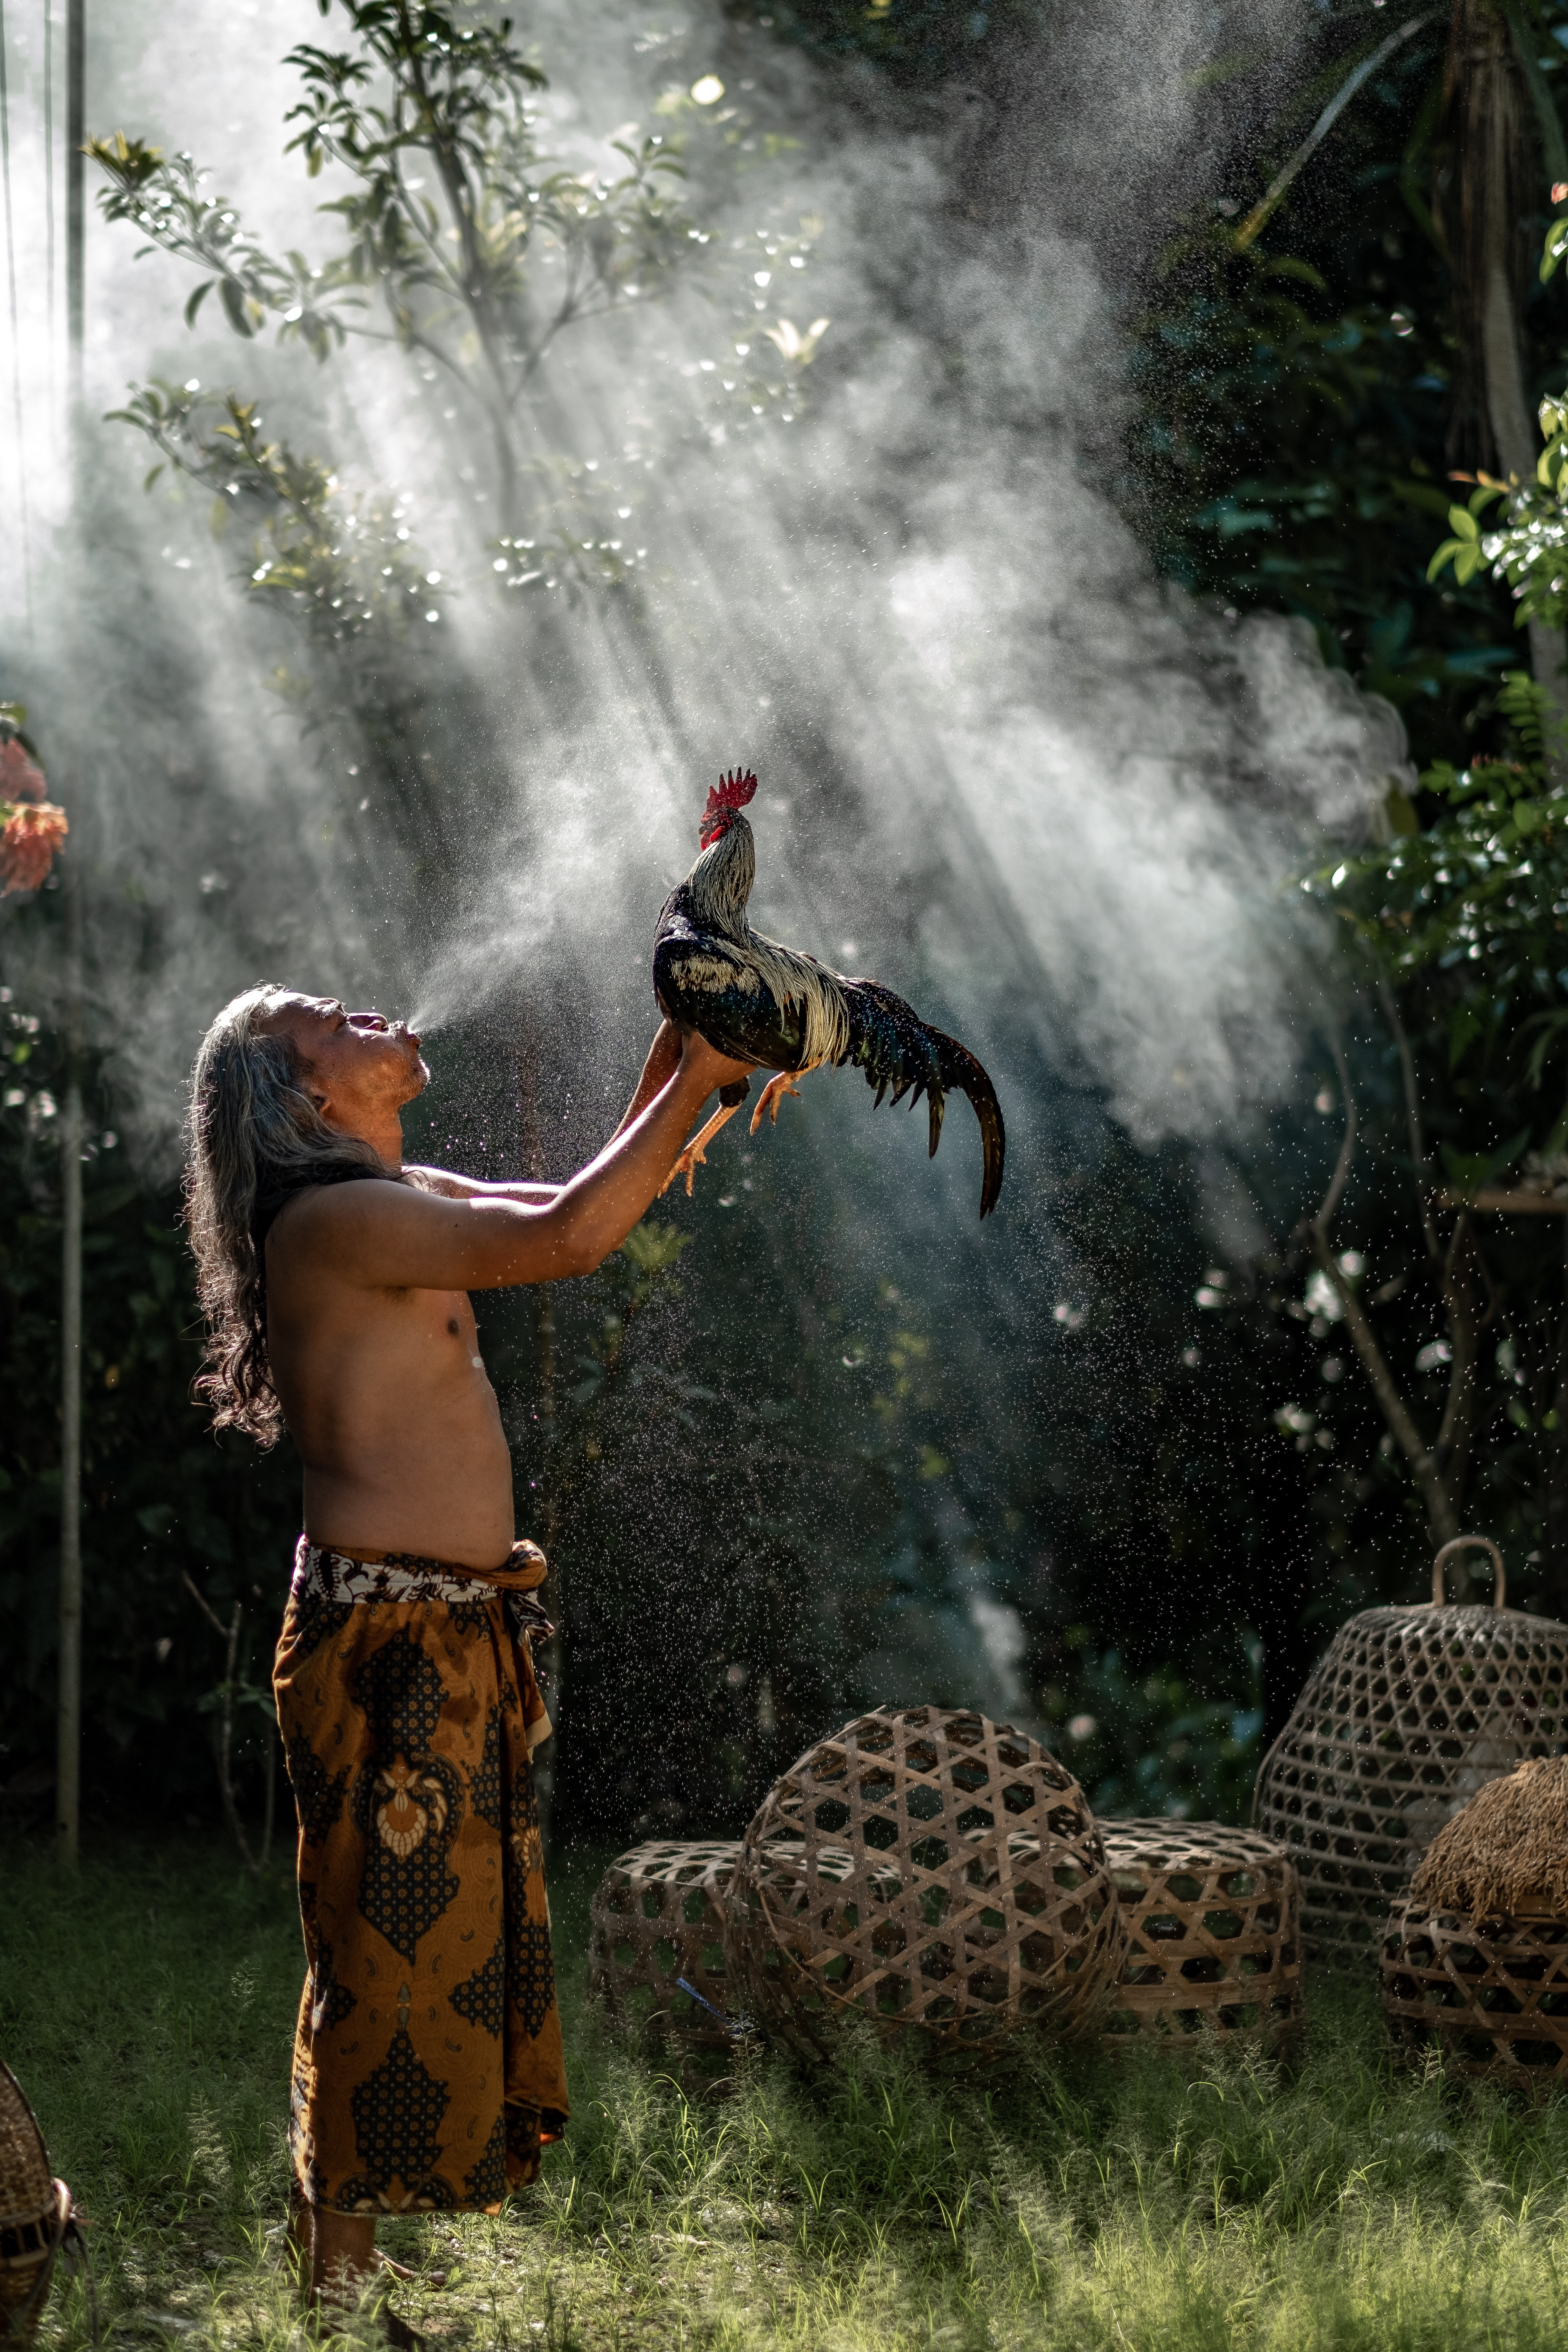 man raising rooster while blowing smoke during daytime